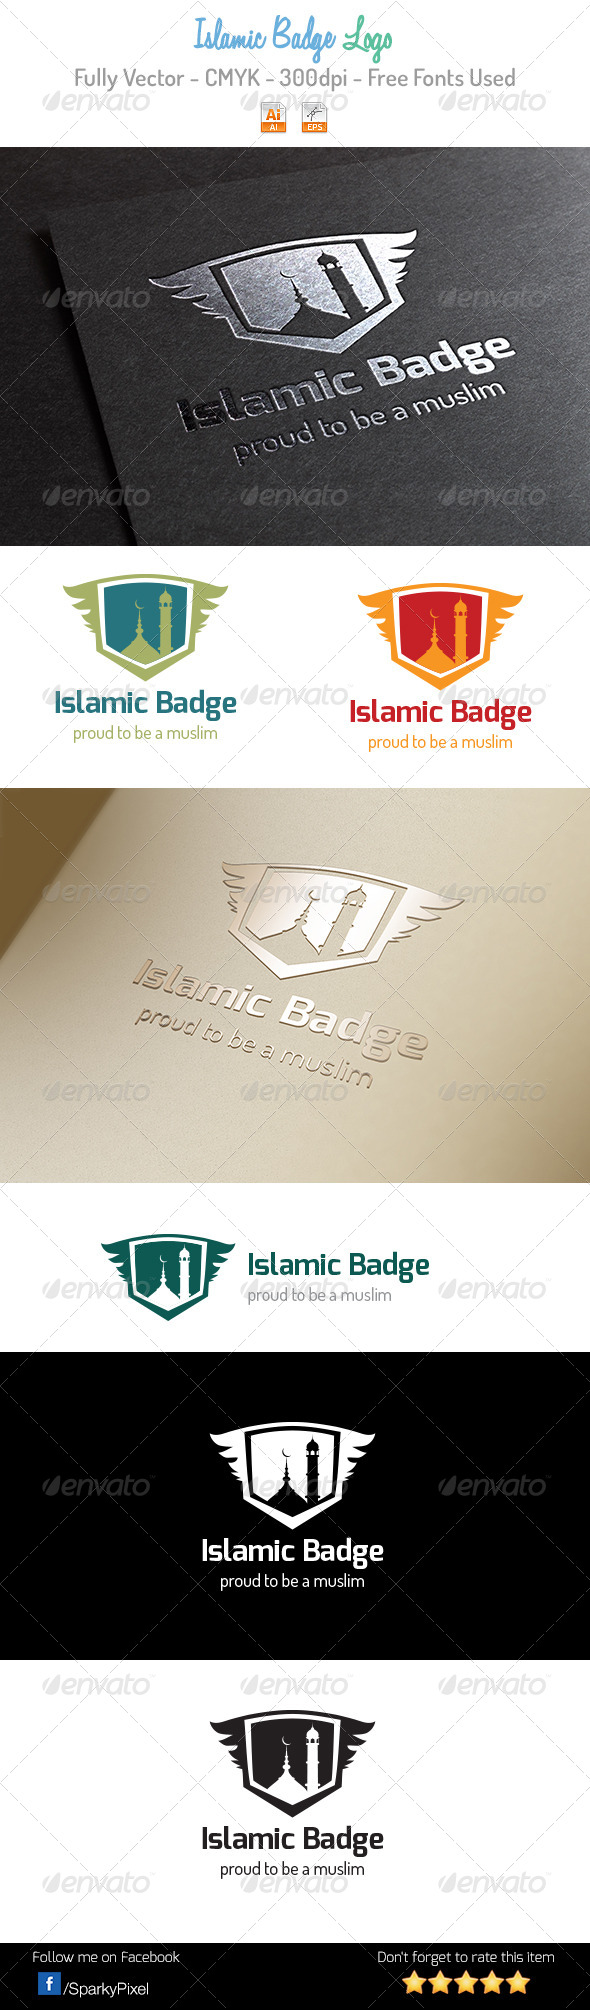 Islamic Badge Logo - Symbols Logo Templates